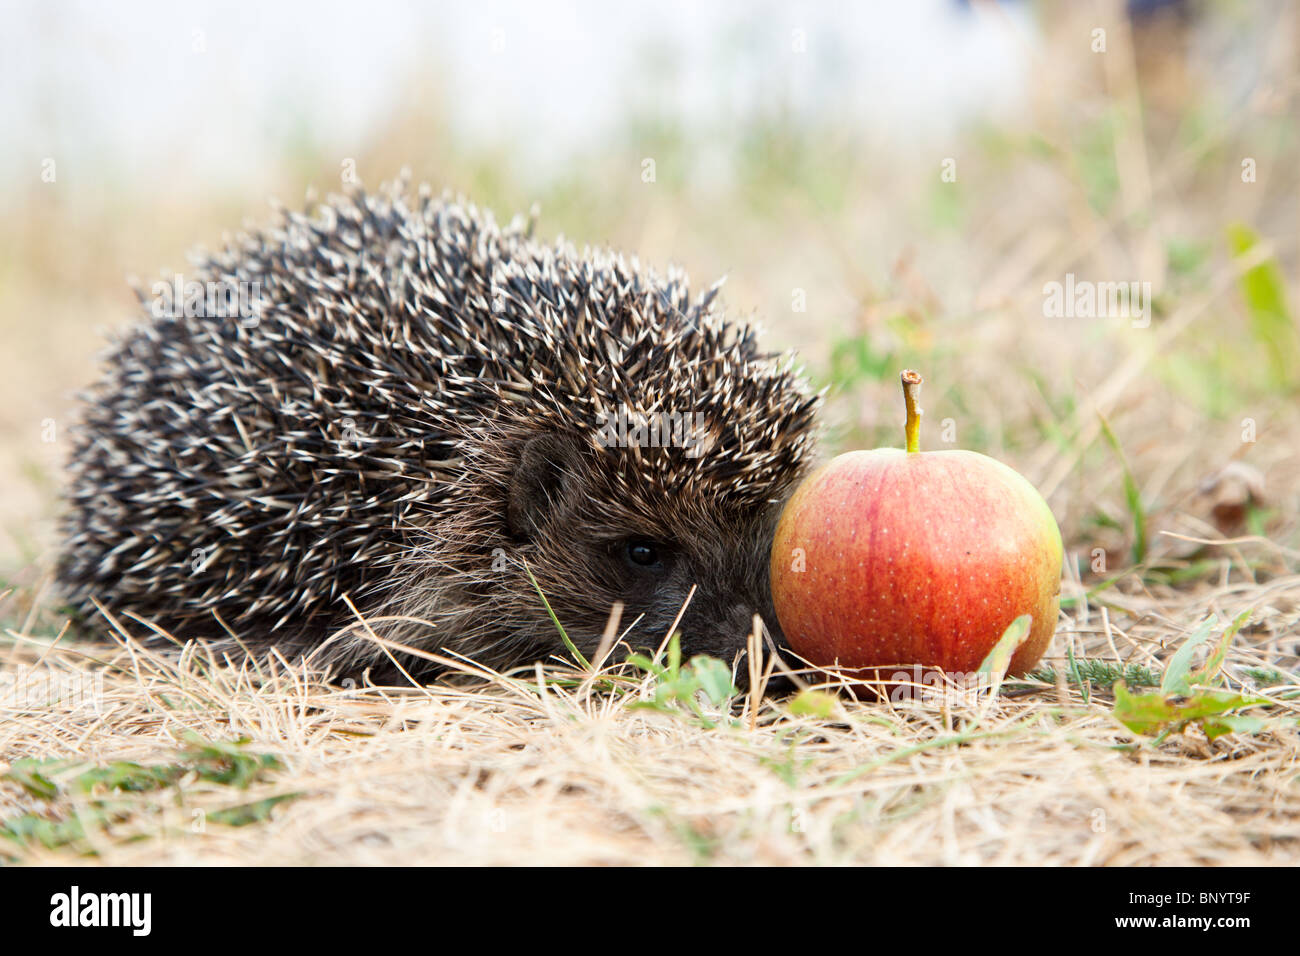 The young hedgehog has hidden at red apple. - Stock Image